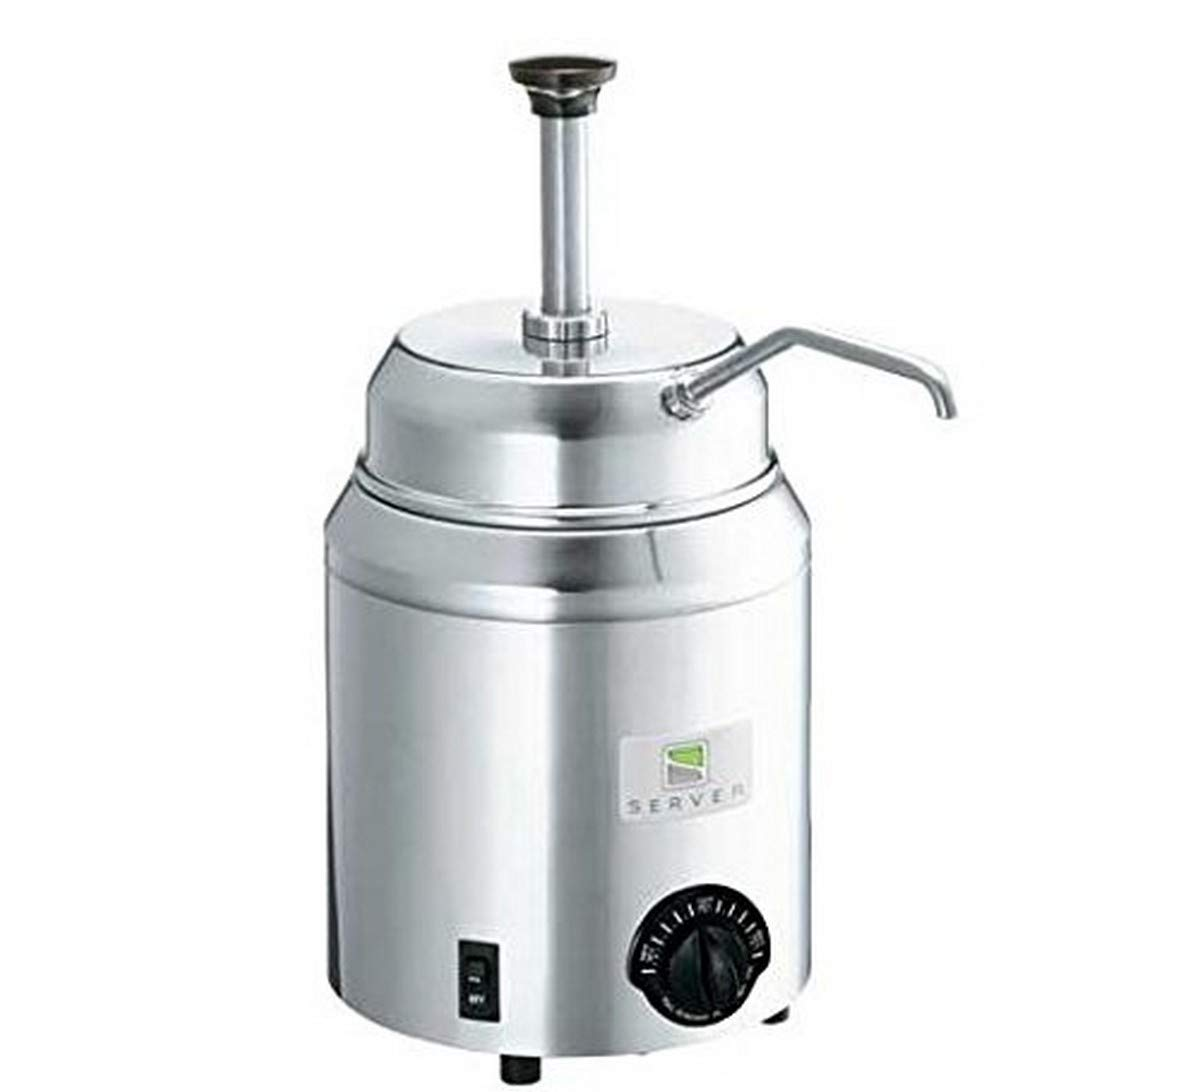 Server Products FSP-82060 Topping Warmer with Pump, 120V, 3 Quart, Steel